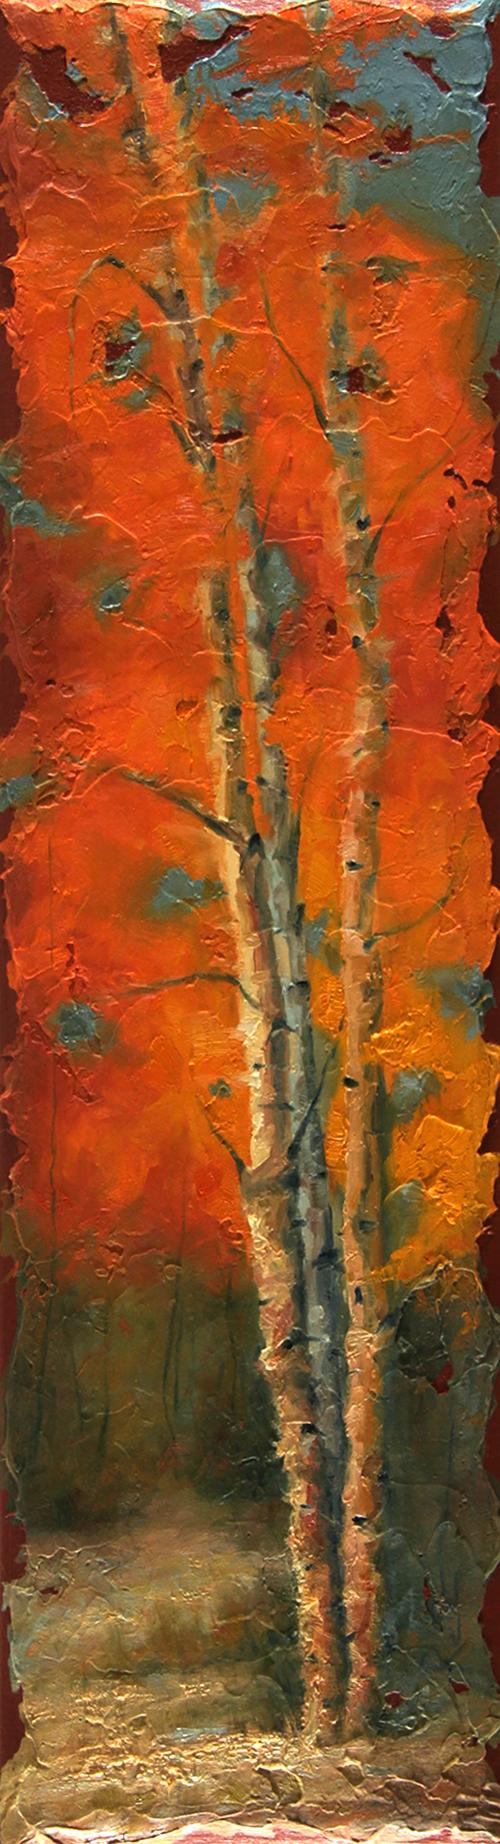 Representational painting by dave reiter of aspen trees in the fall.